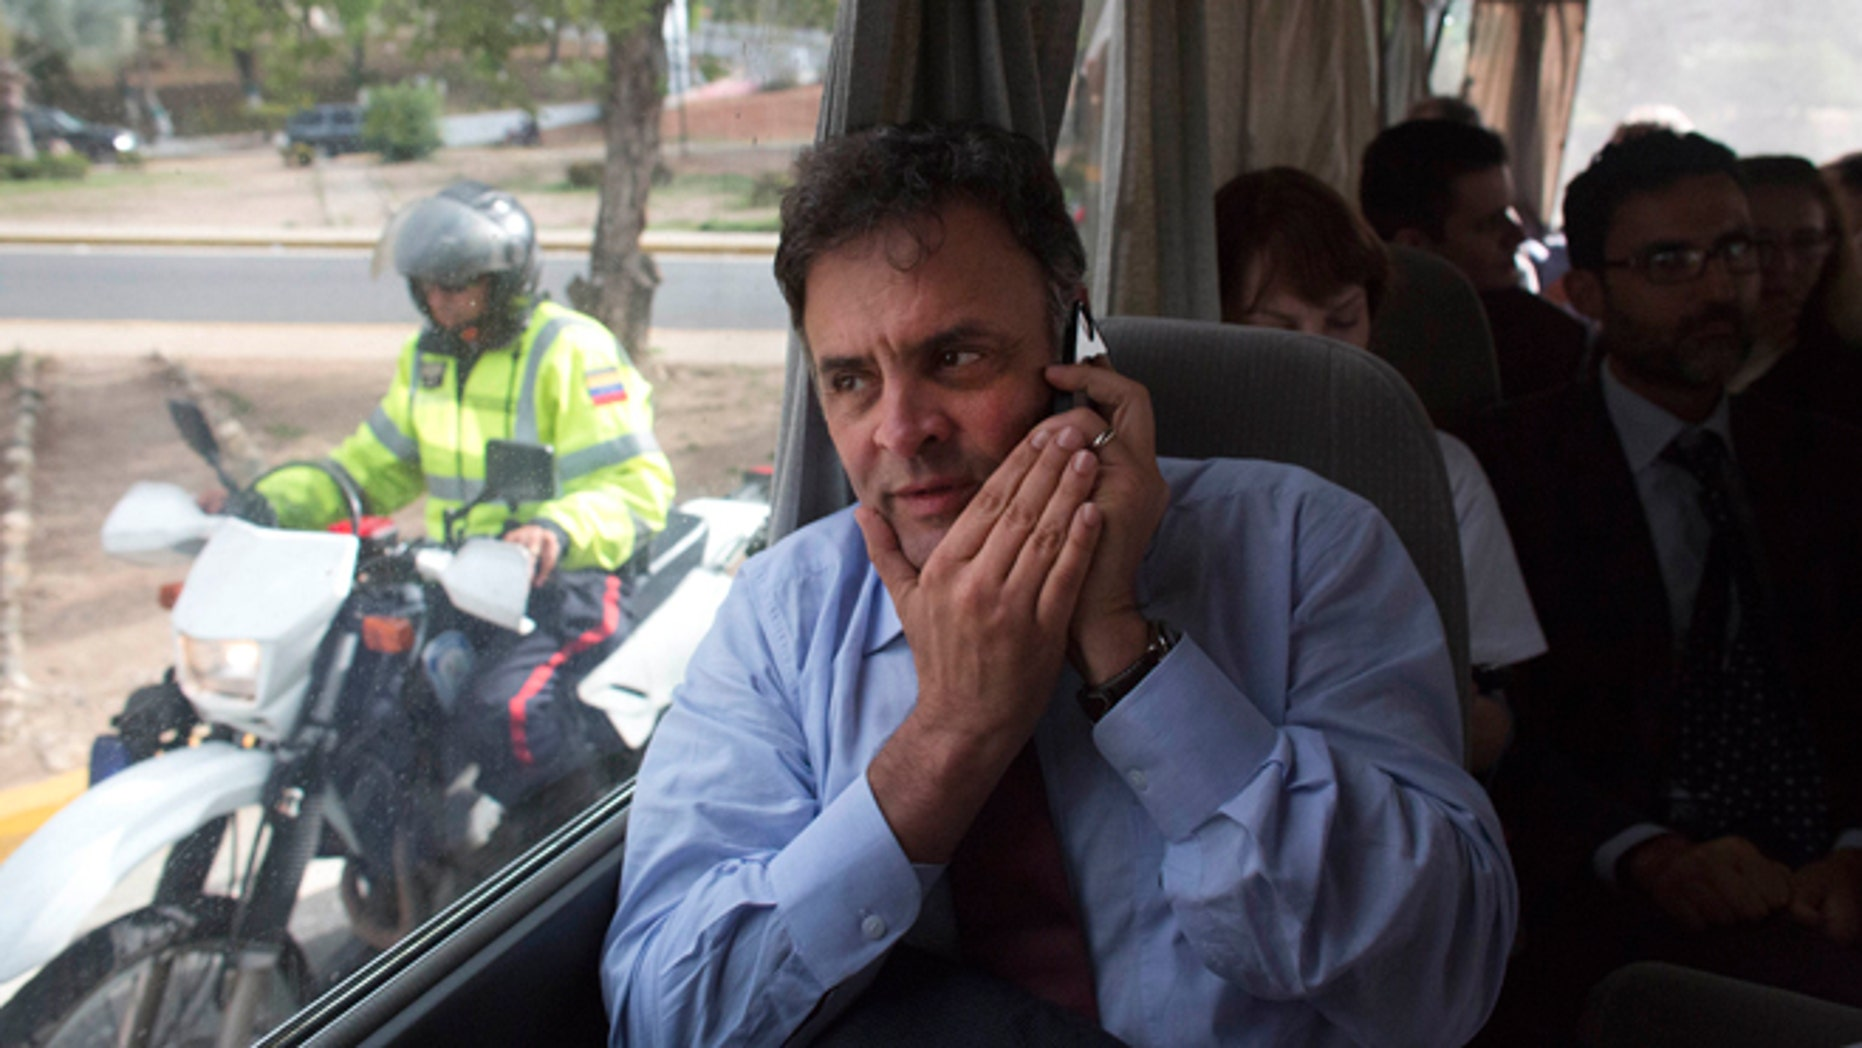 Brazilian Senator Aecio Neves speaks on his cell phone as he rides in a van with other Brazilian senators, escorted by Bolivarian Police on motorcycles, after departing the airport in La Guaira, Venezuela, Thursday, June 18, 2015. The group of Brazilian senators failed to reach the capital city of Caracas twice, due to traffic caused by a demonstration and road maintenance. The delegation had traveled to Venezuela to meet with members of Venezuela's opposition but returned to the airport to fly back to Brazil. (AP Photo/Ariana Cubillos)